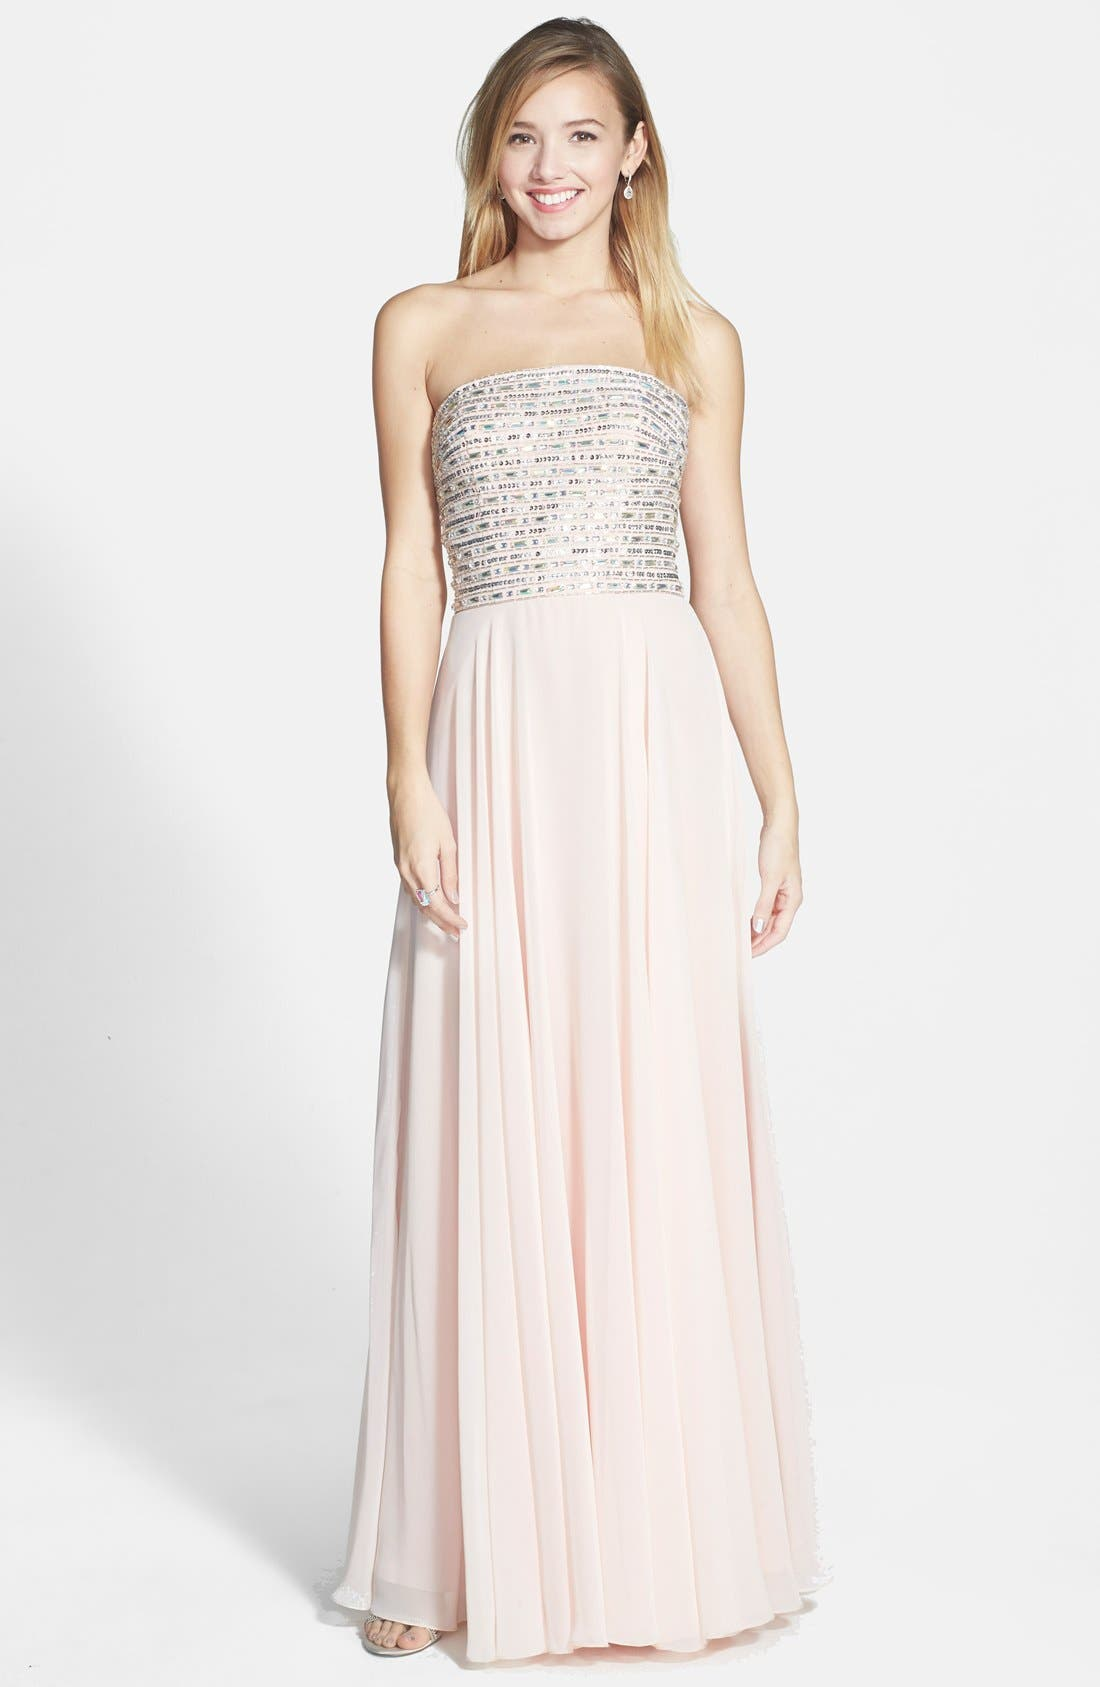 Alternate Image 1 Selected - Xscape Lace-Up Back Embellished Bustier Chiffon Gown